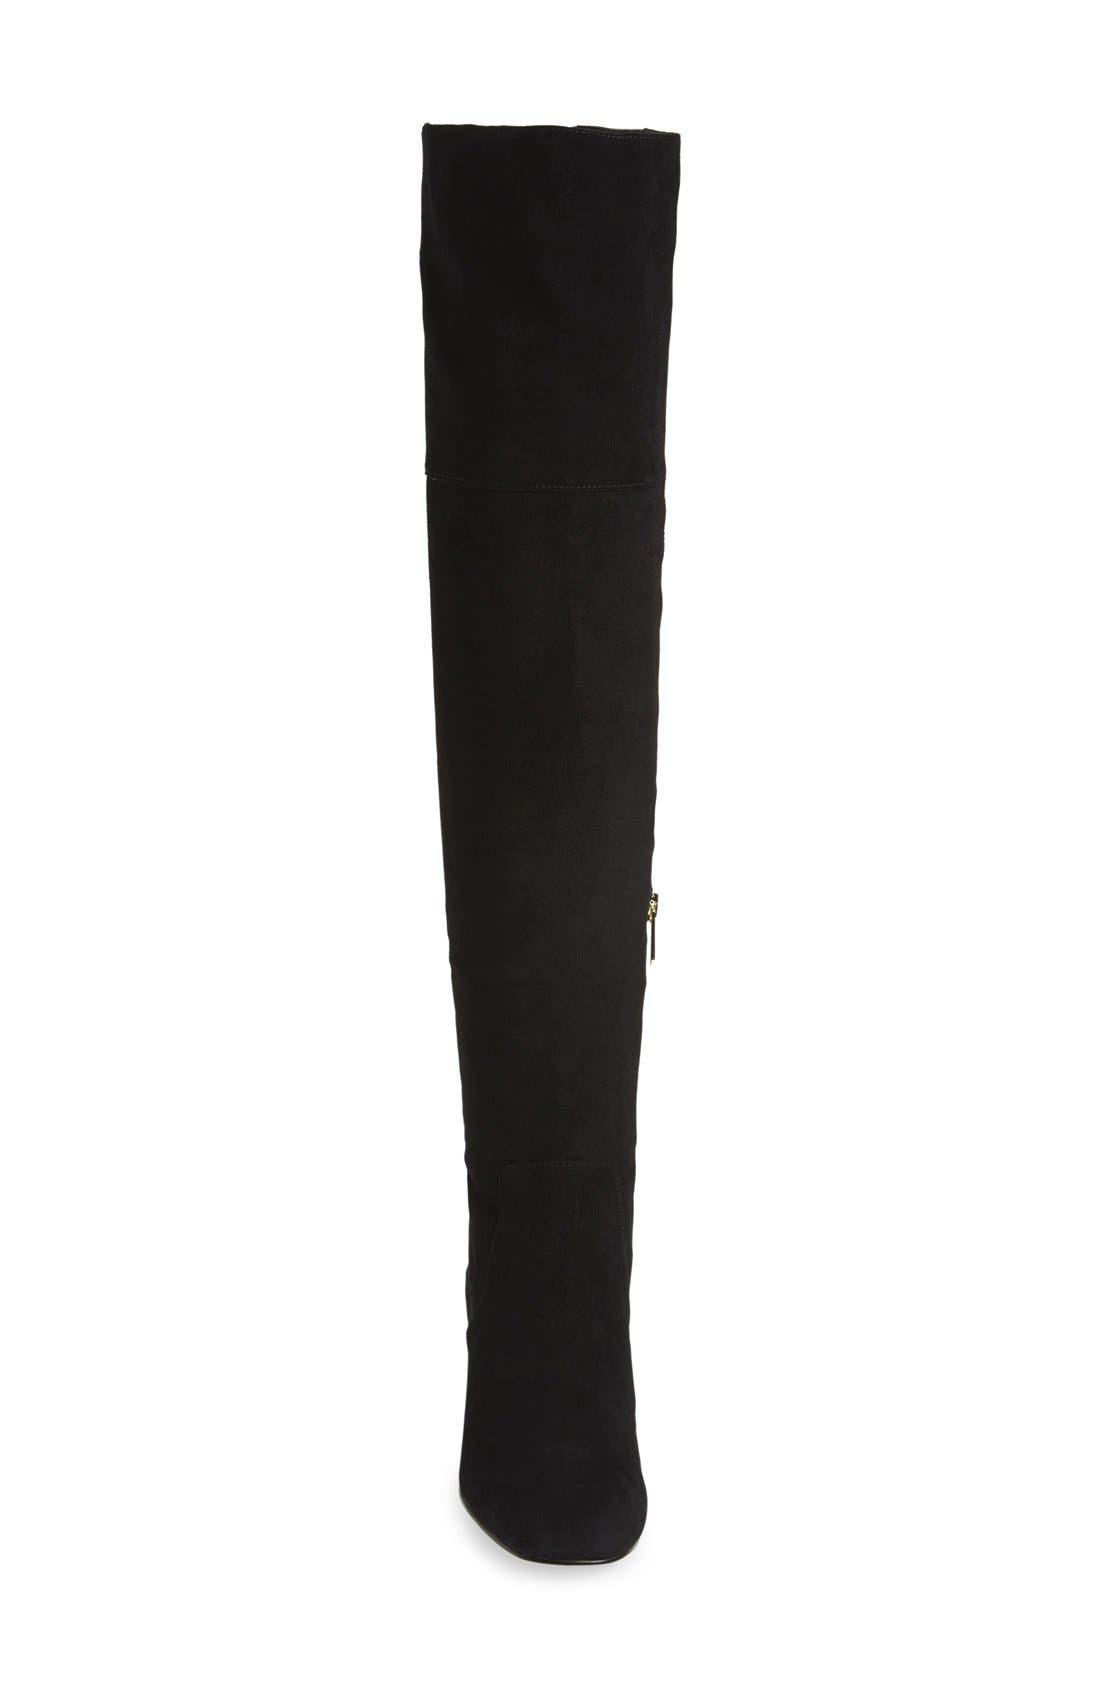 'Elina' Over the Knee Boot,                             Alternate thumbnail 3, color,                             Black Suede Leather